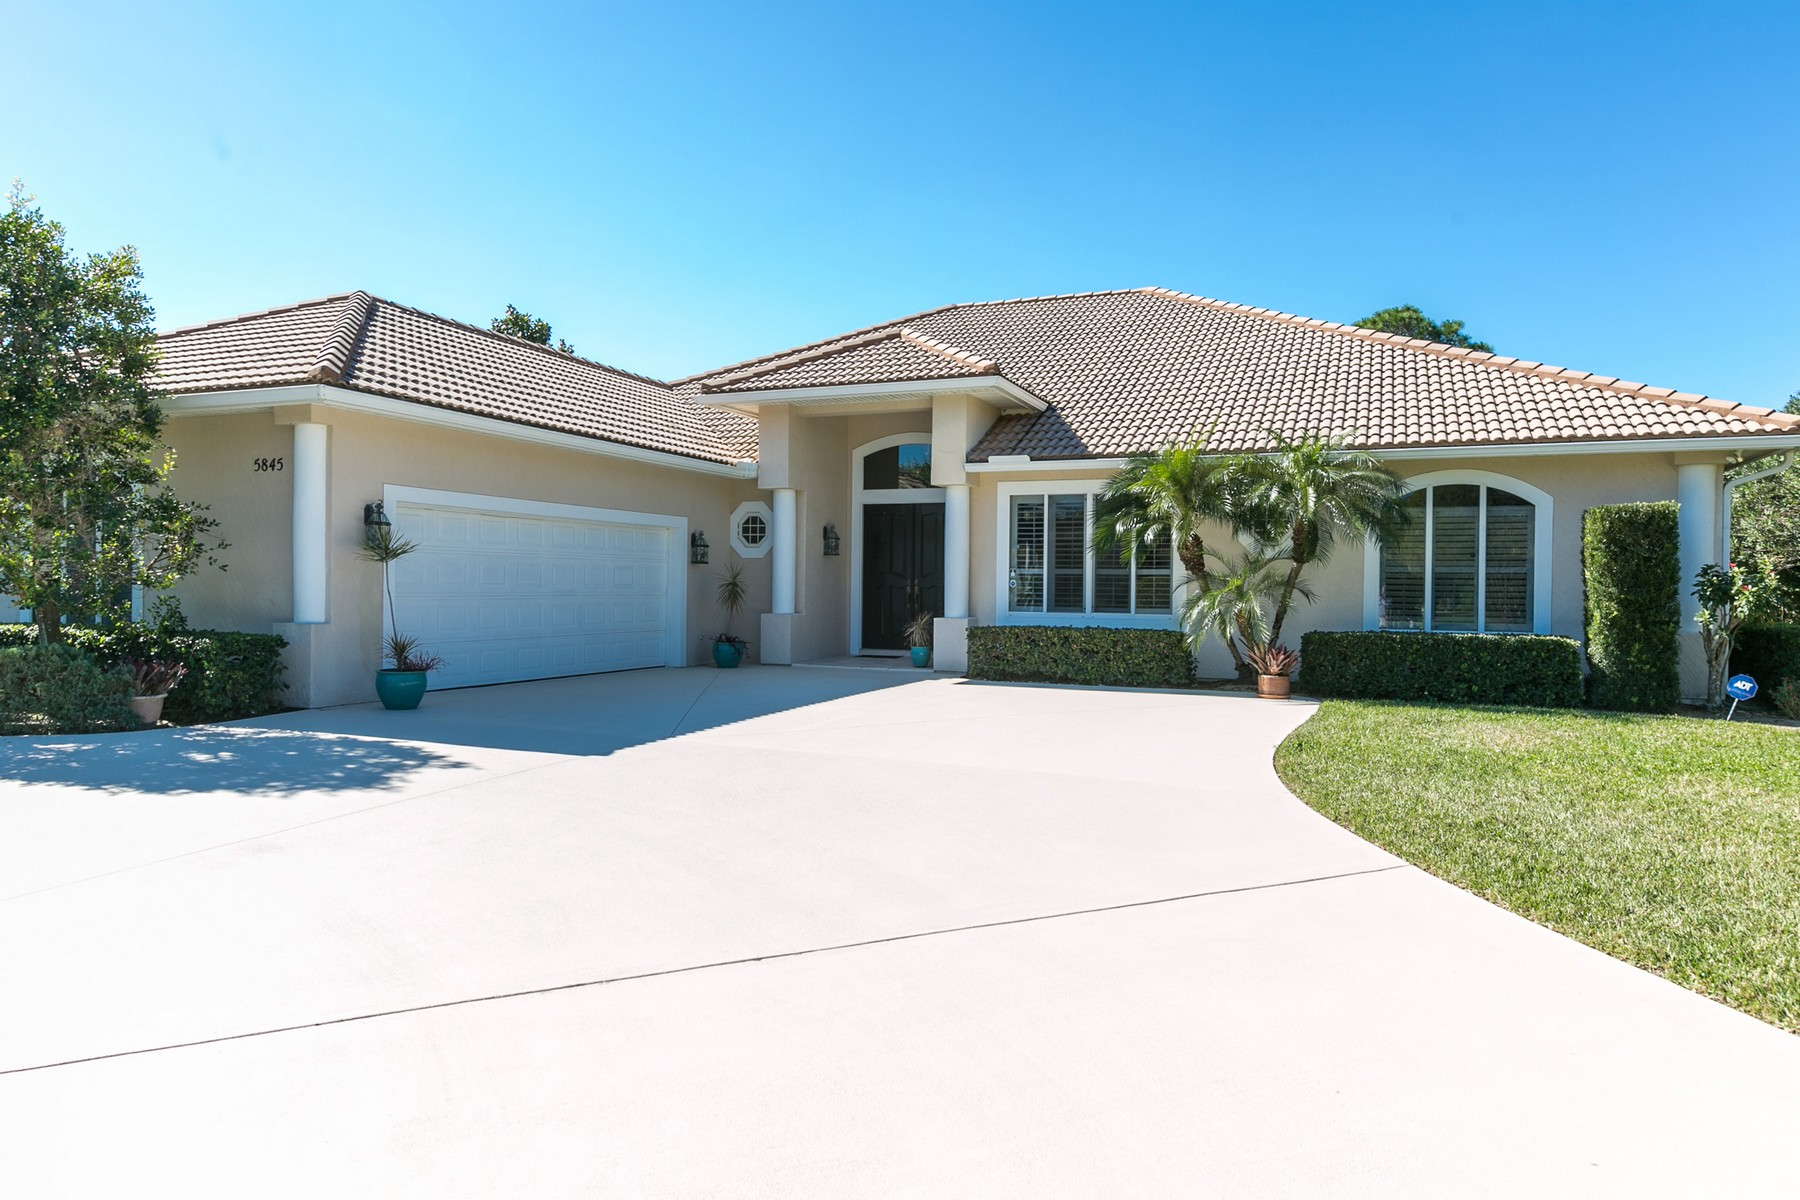 Single Family Home for Sale at Pool Home in Bent Pine 5845 Turnberry Lane Vero Beach, Florida, 32967 United States